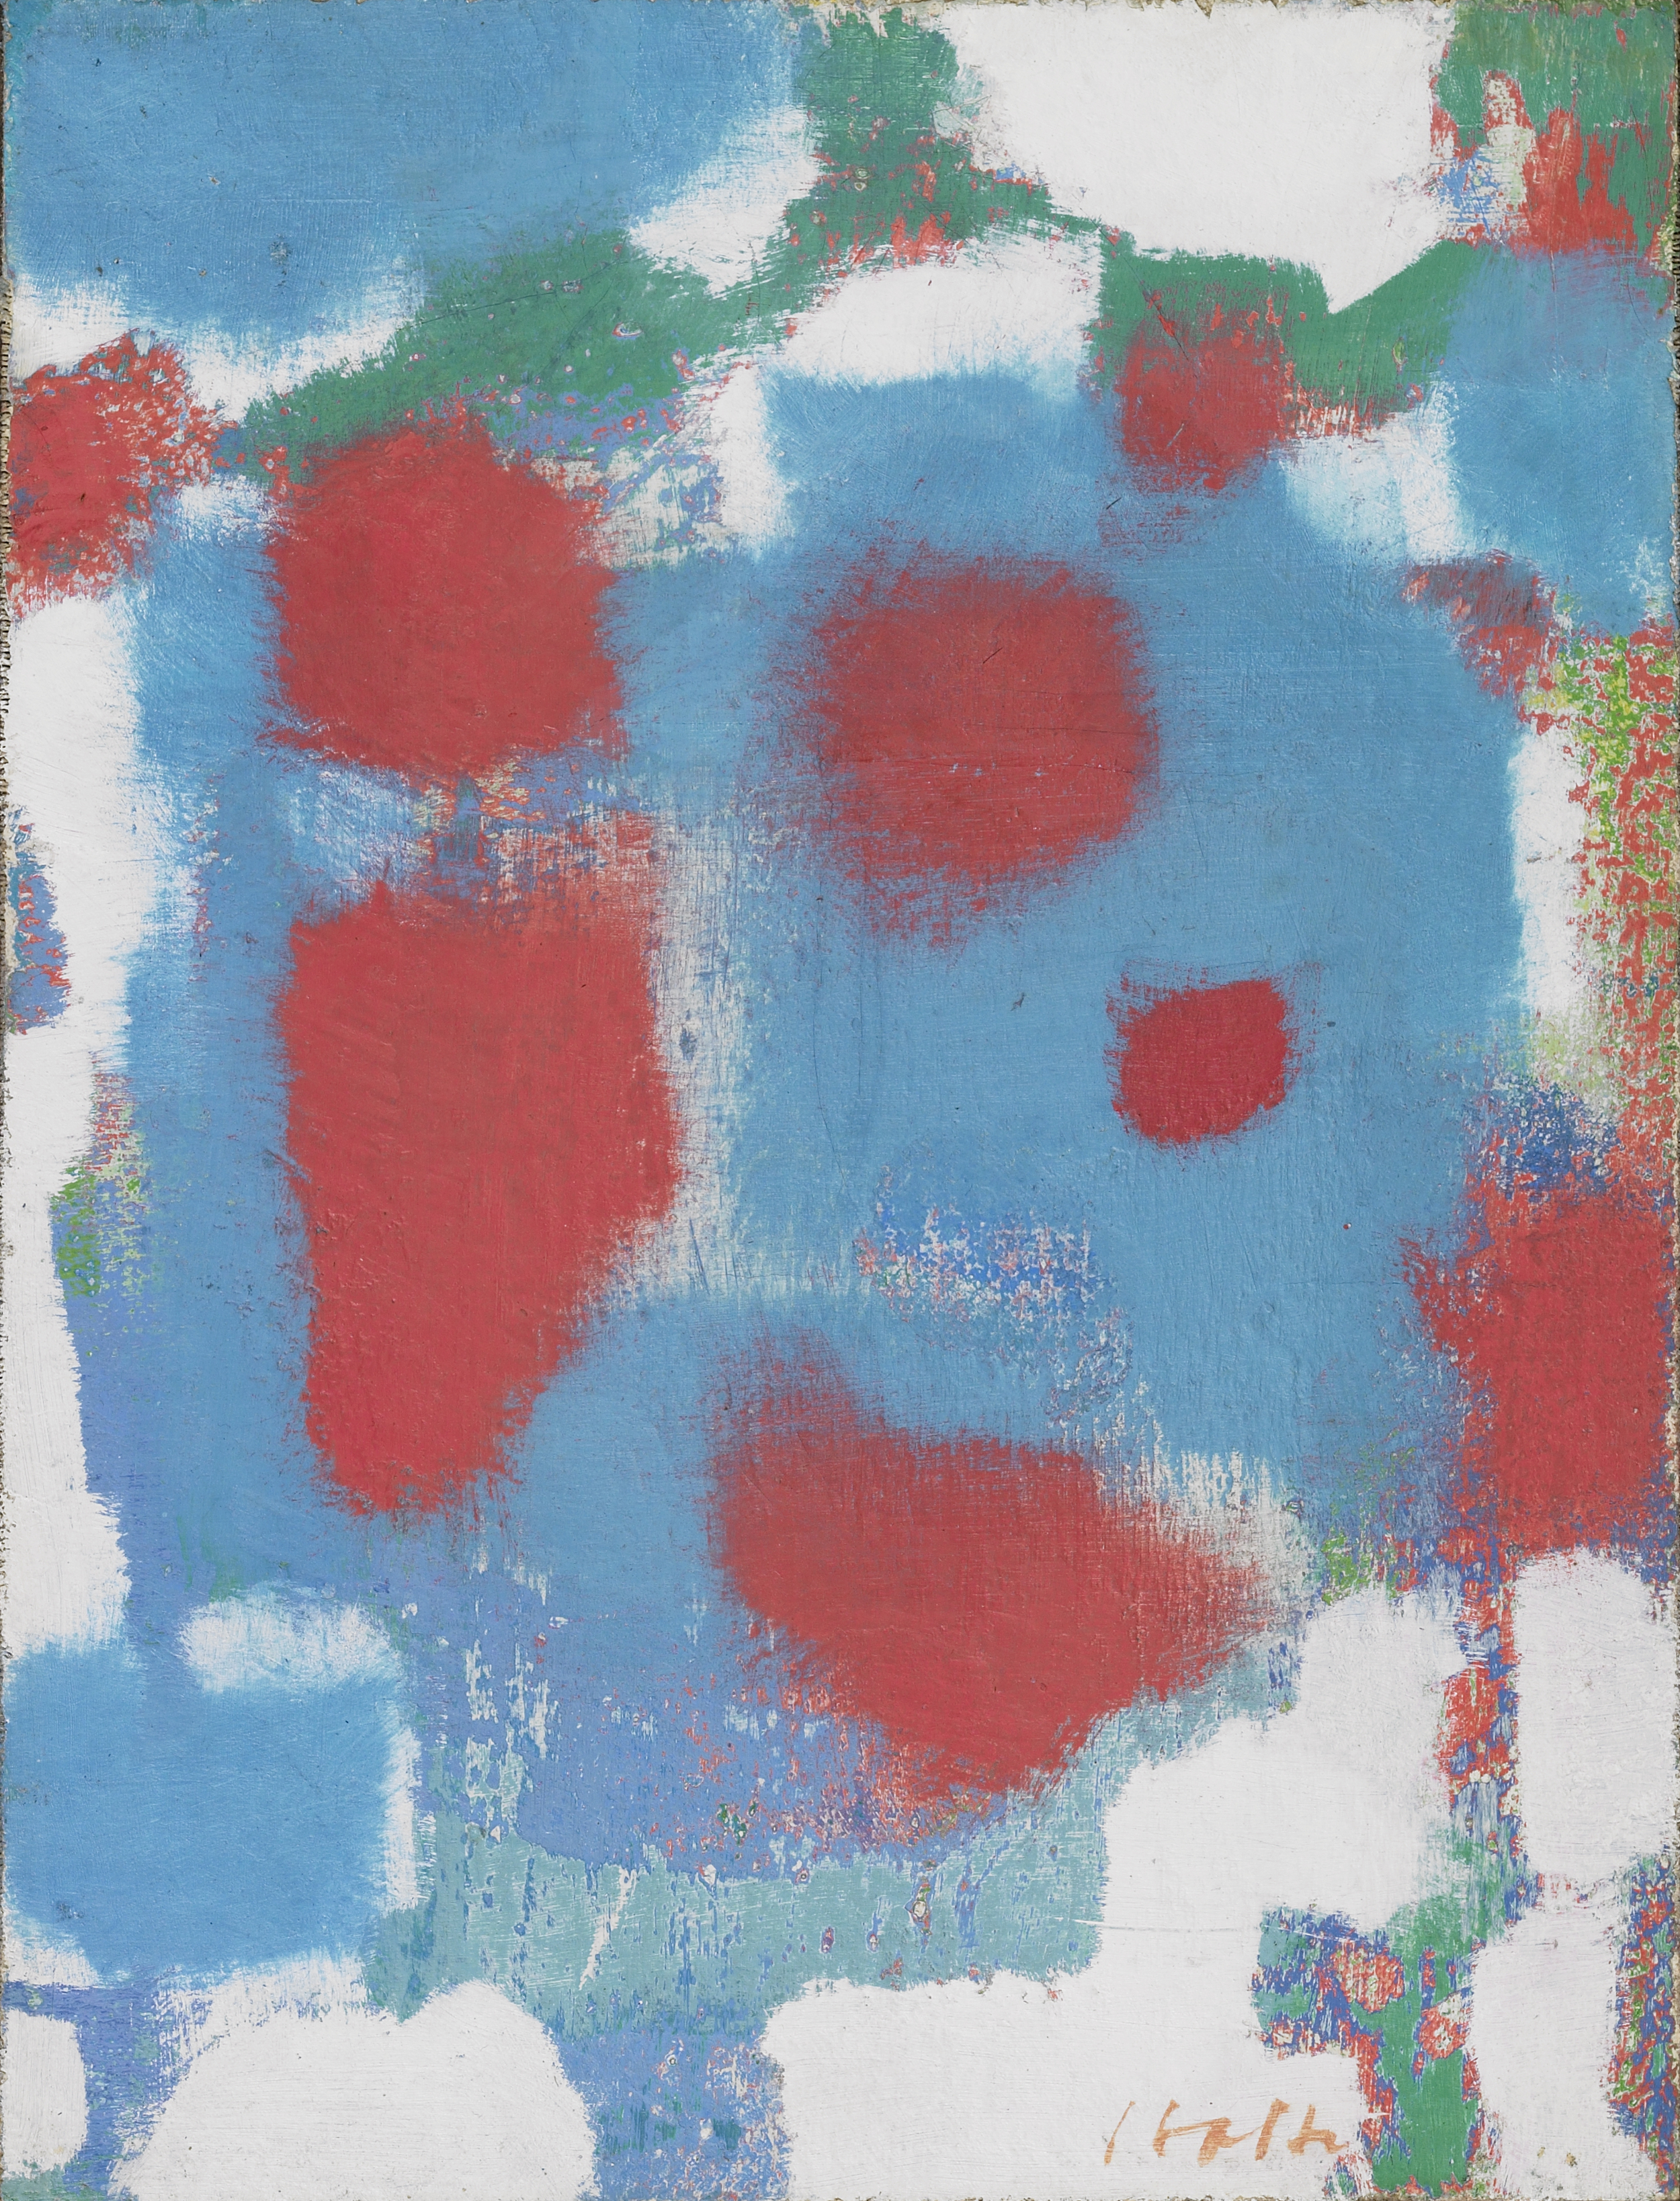 Abstract Composition  , Oil on canvas mounted on board, 1961, 11 7/8 x 9 inches